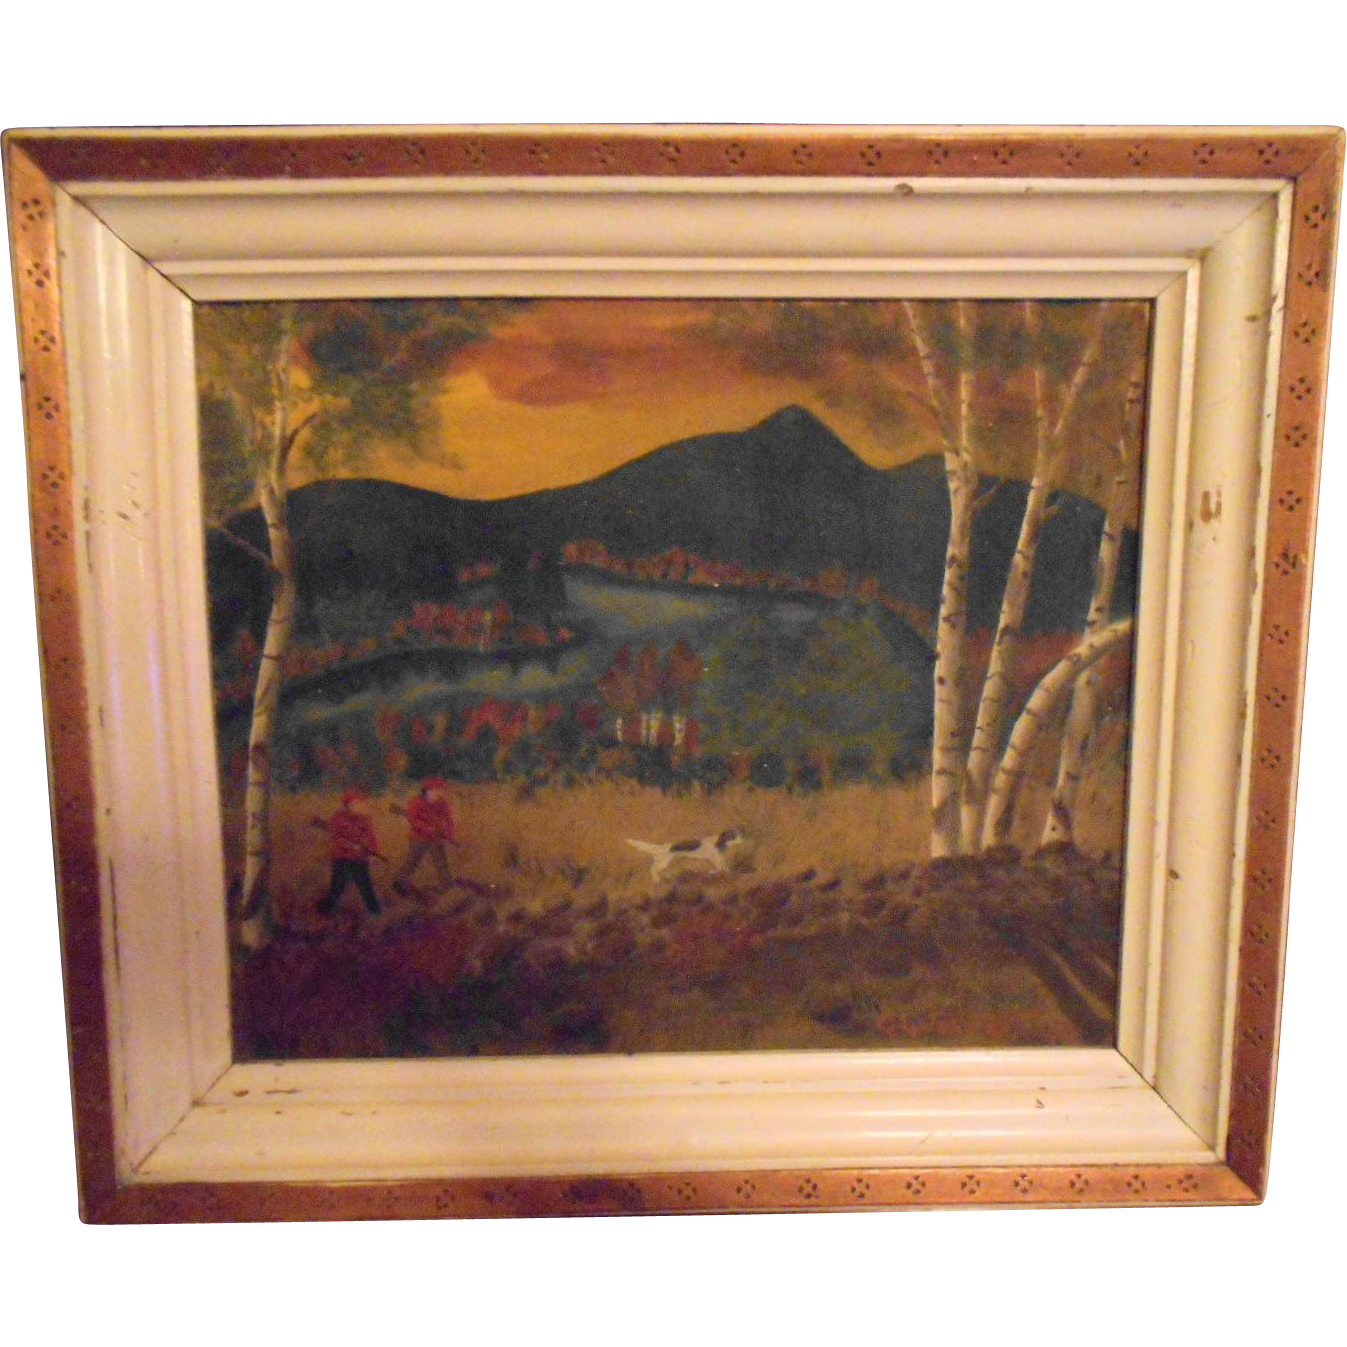 Hand Painted Folk Nova Scotia Canada Art Hunting Scene Artist Signed Dated